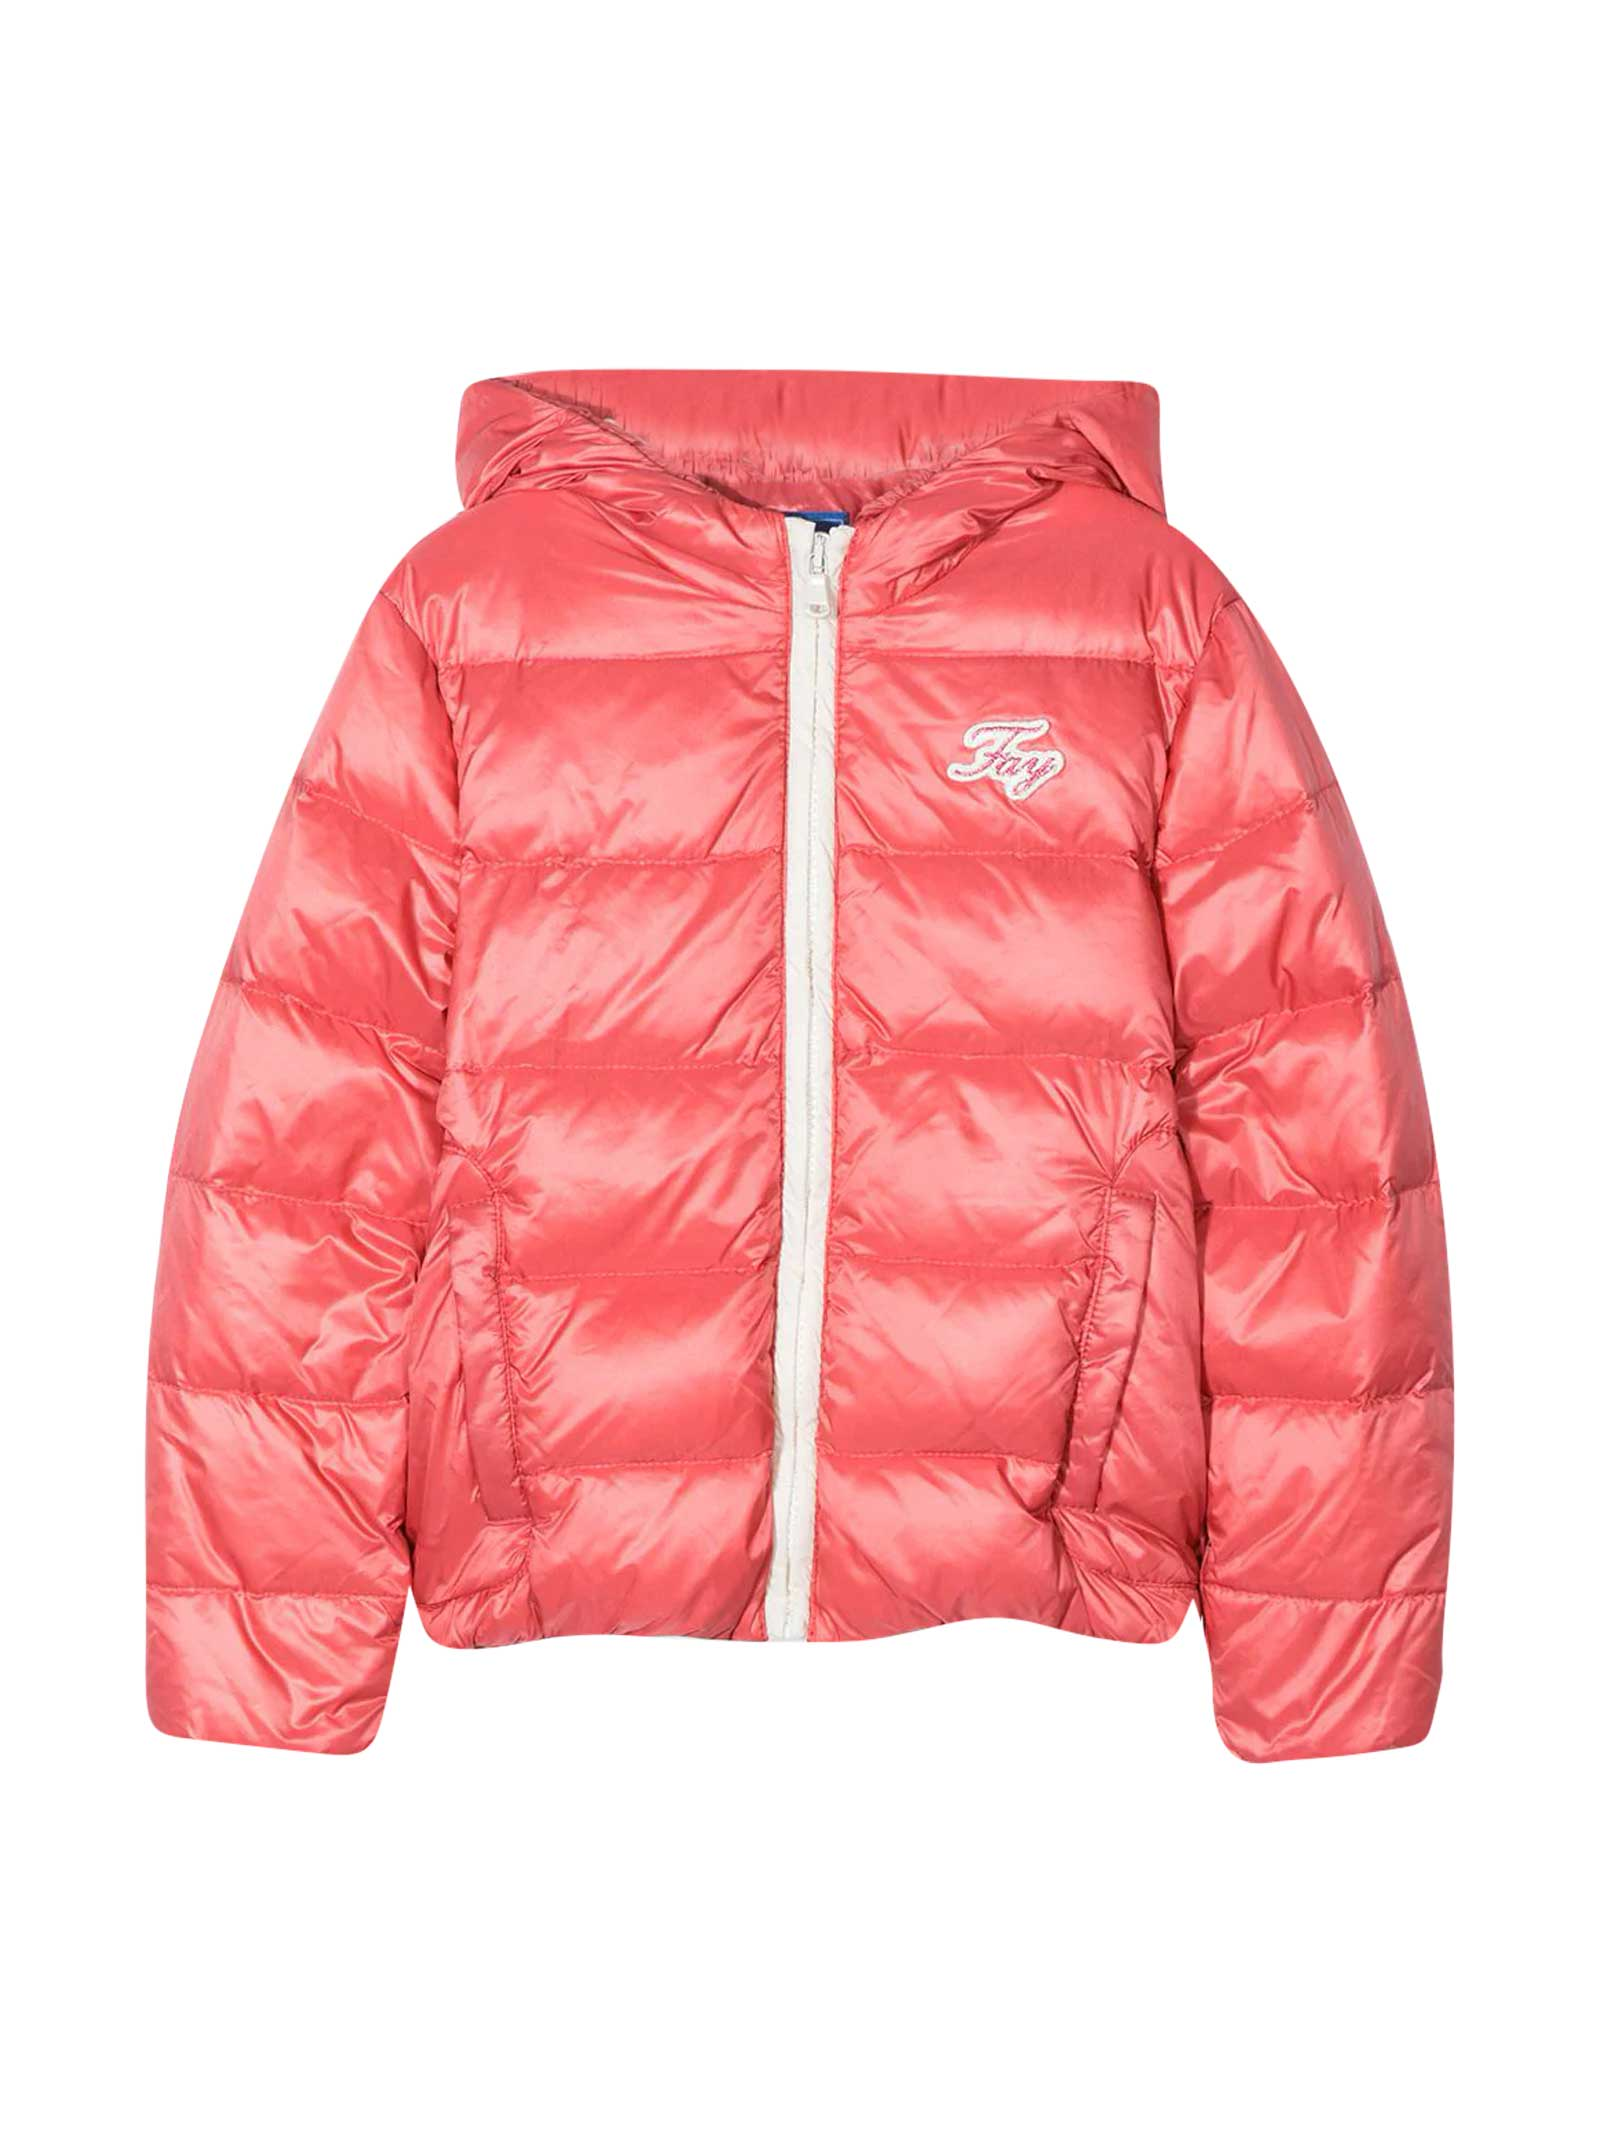 Pink down jacket with hood. Down padding, front logo patch, quilted design, front zip closure and long sleeves. 100% Goose Feather